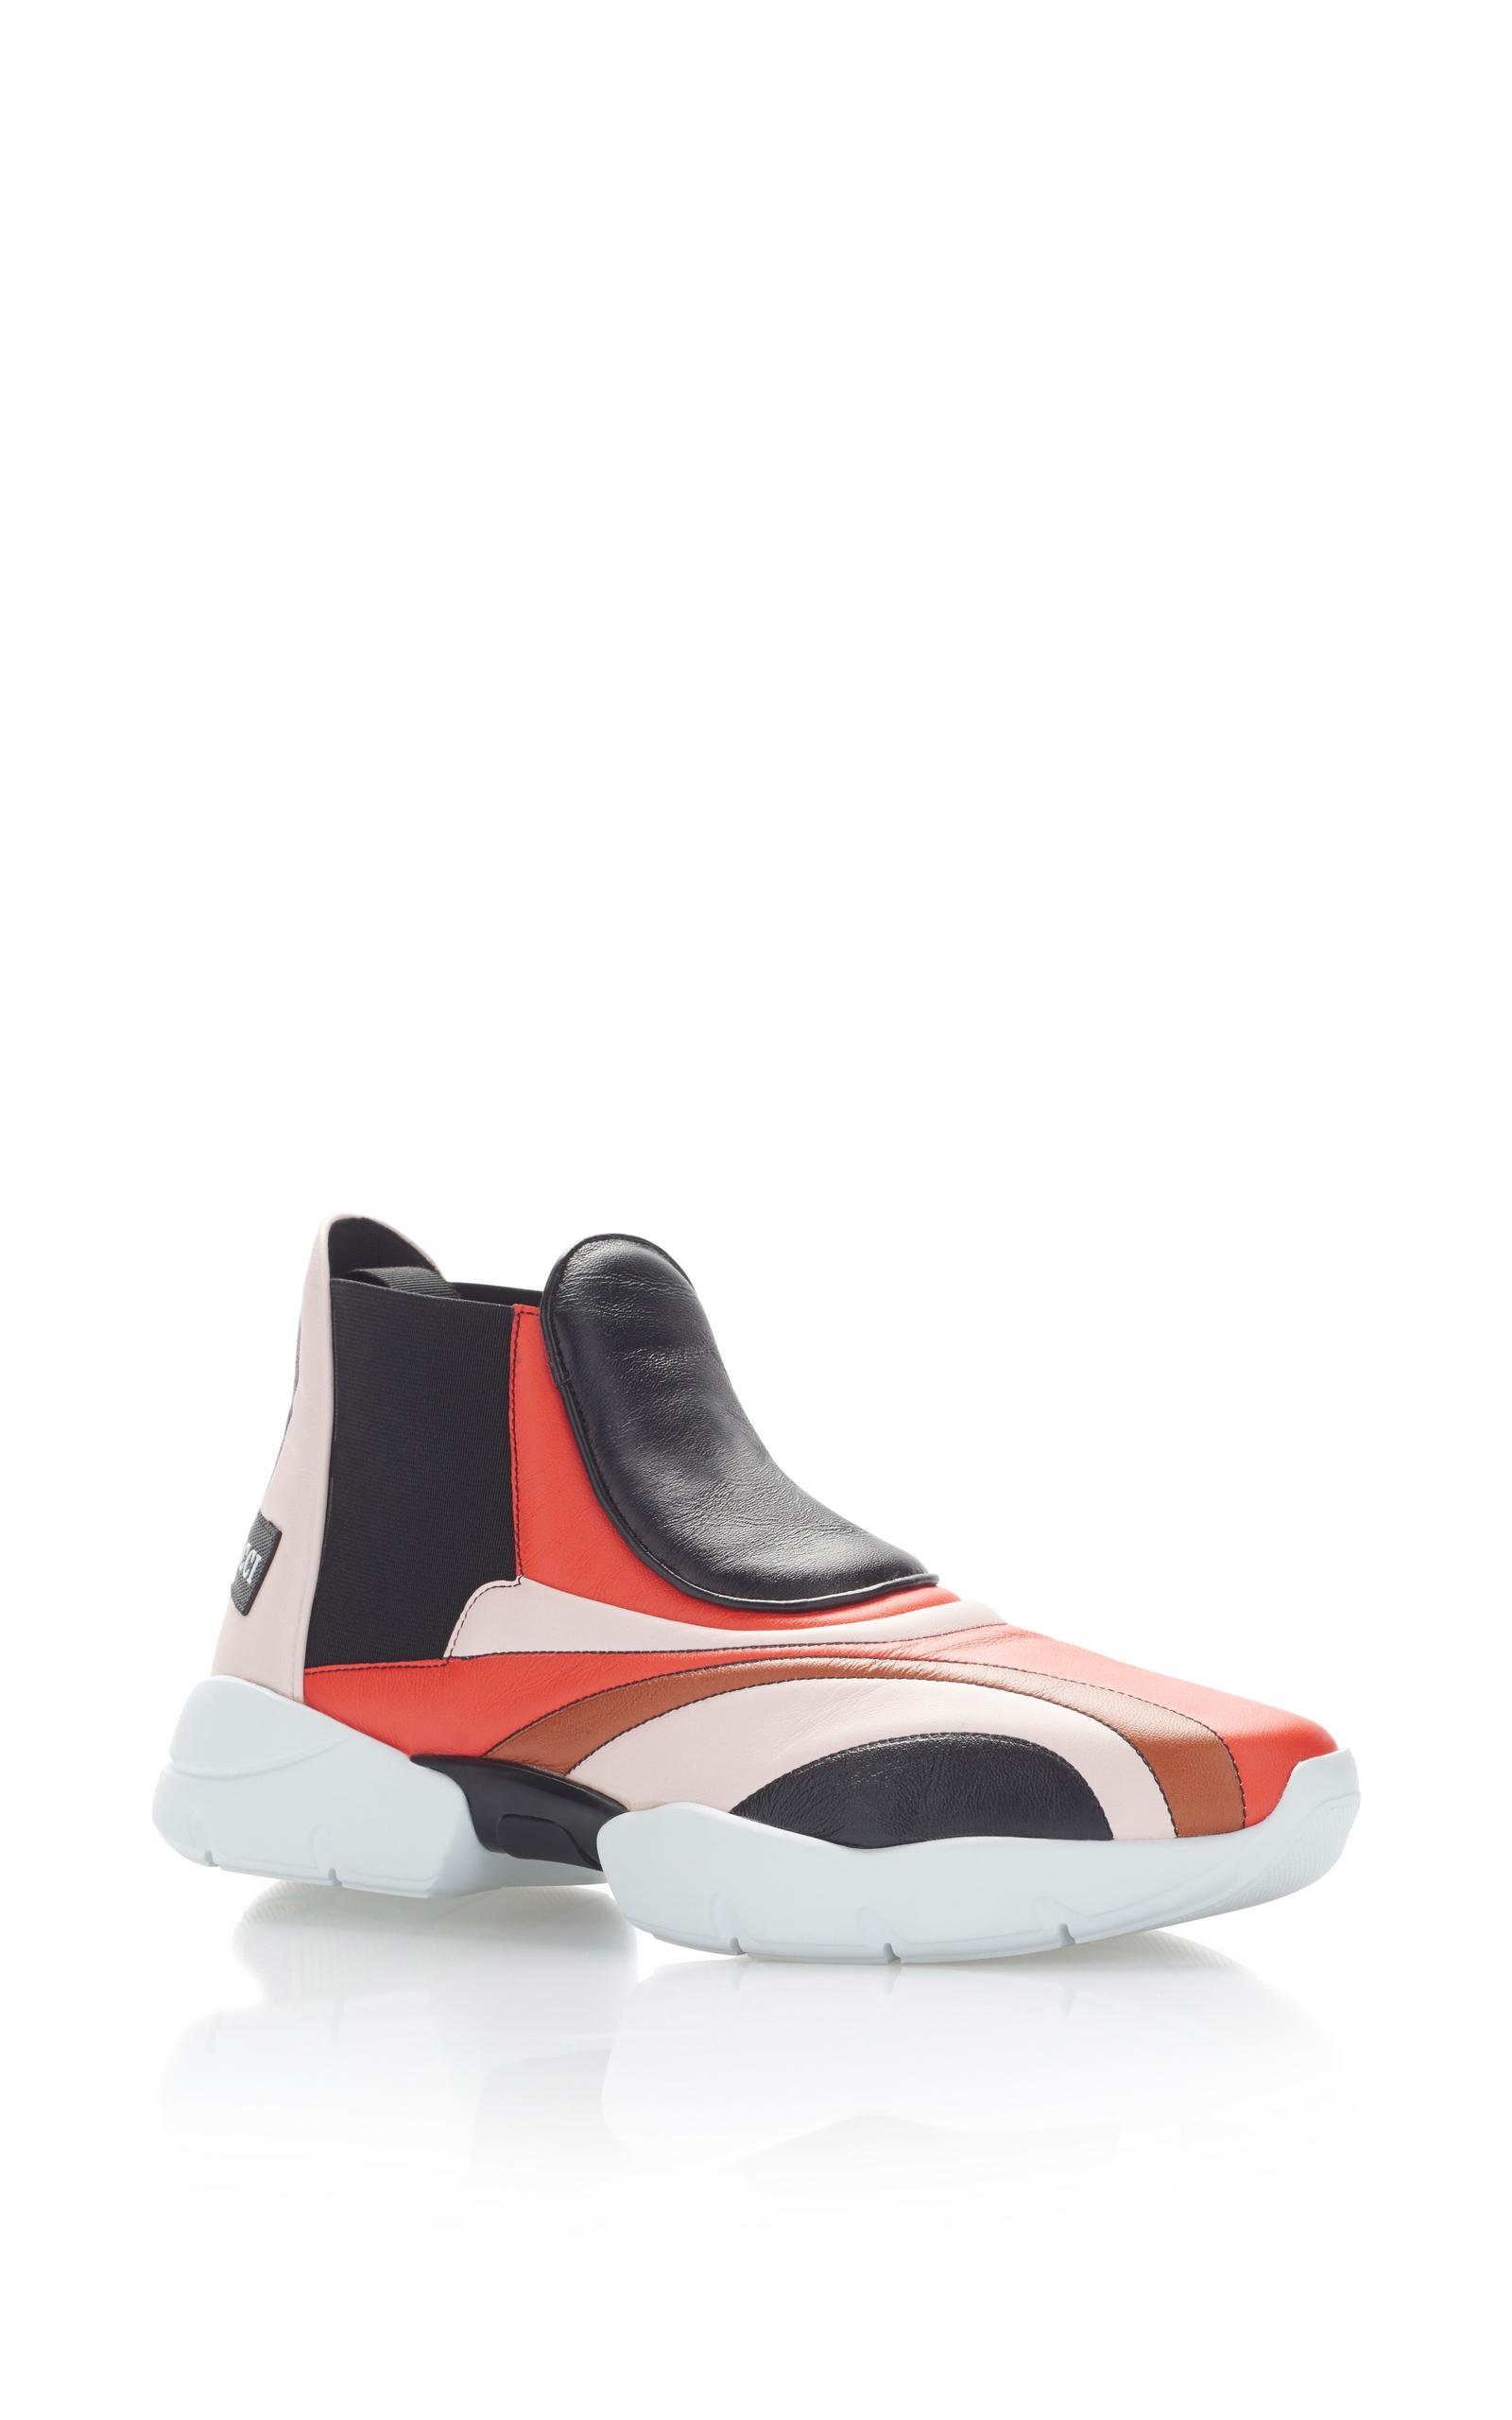 Nike Shoes House Of Fraser